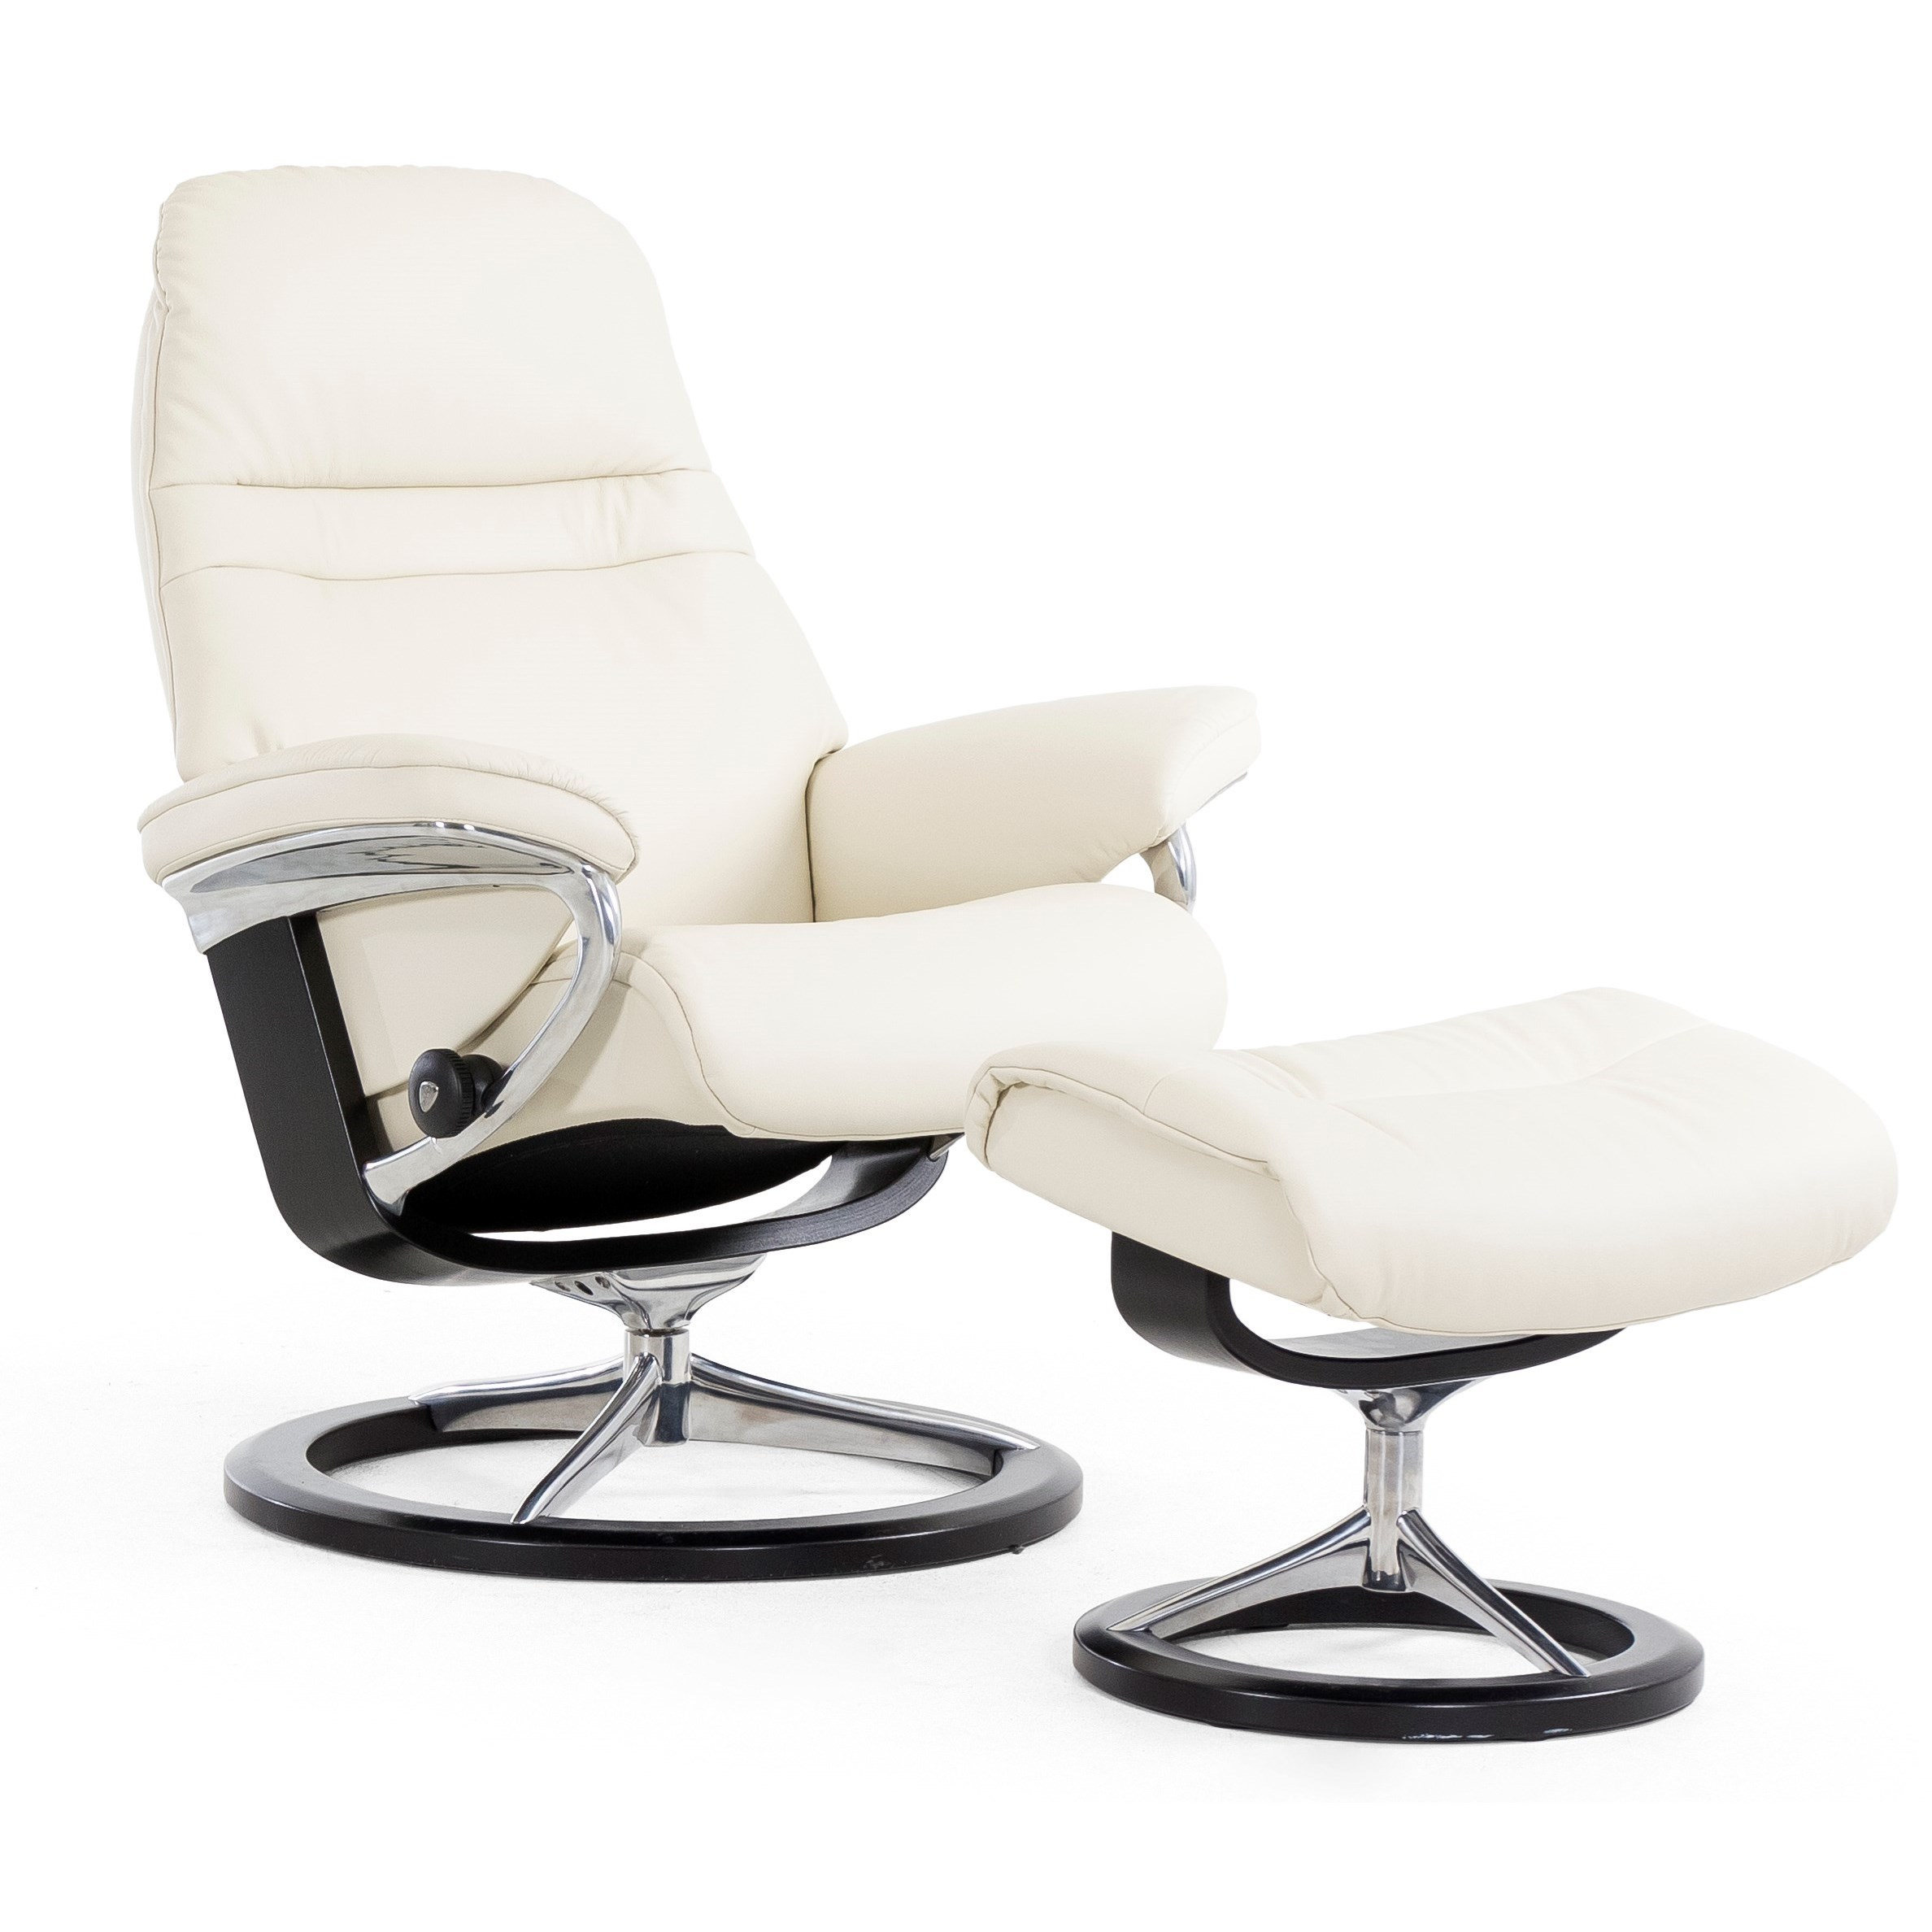 Sunrise Small Reclining Chair and Ottoman by Stressless at Sprintz Furniture